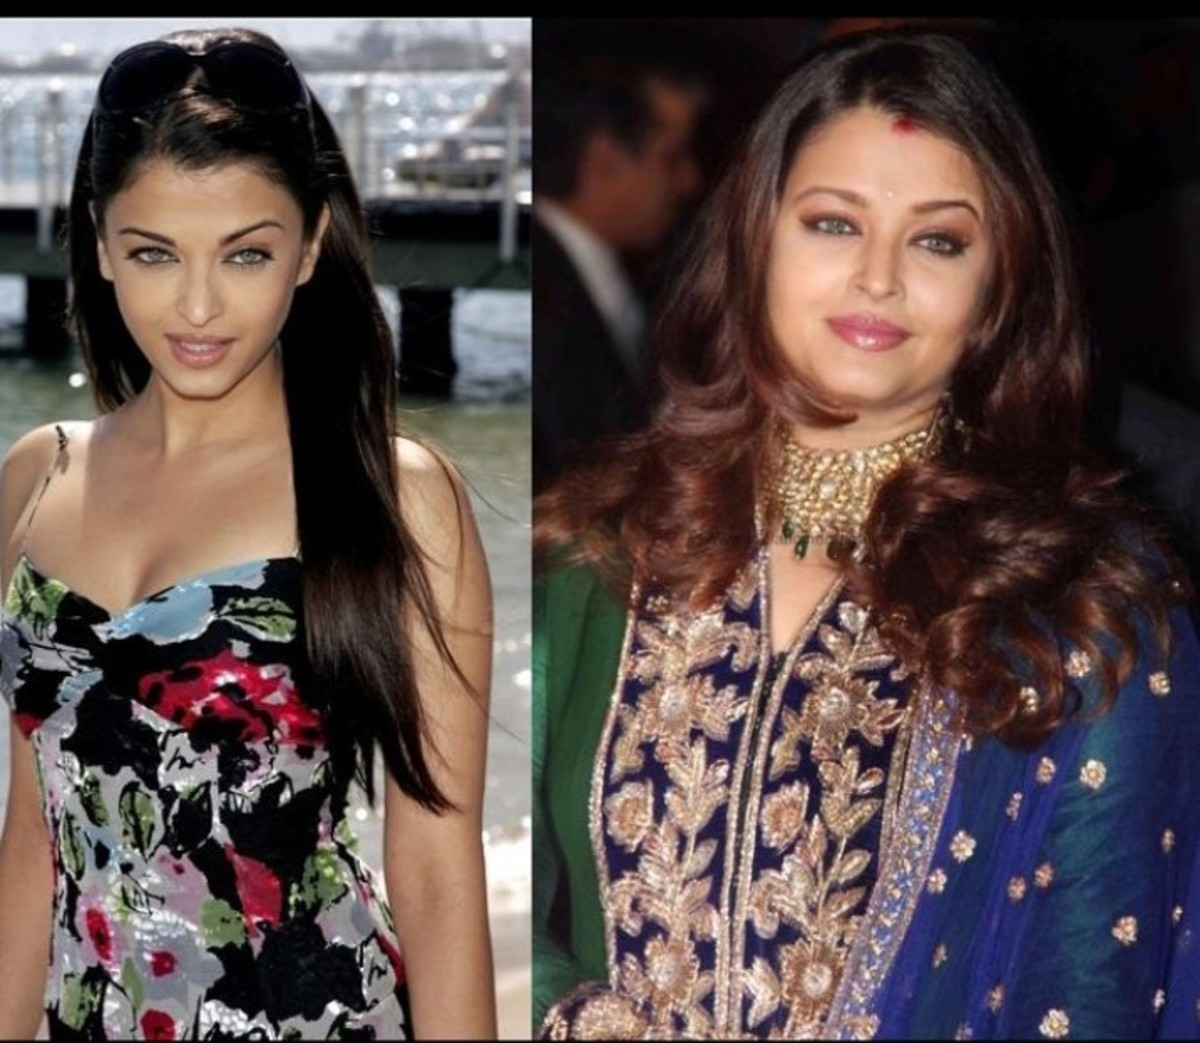 Aishwarya Rai, before and after marriage picture